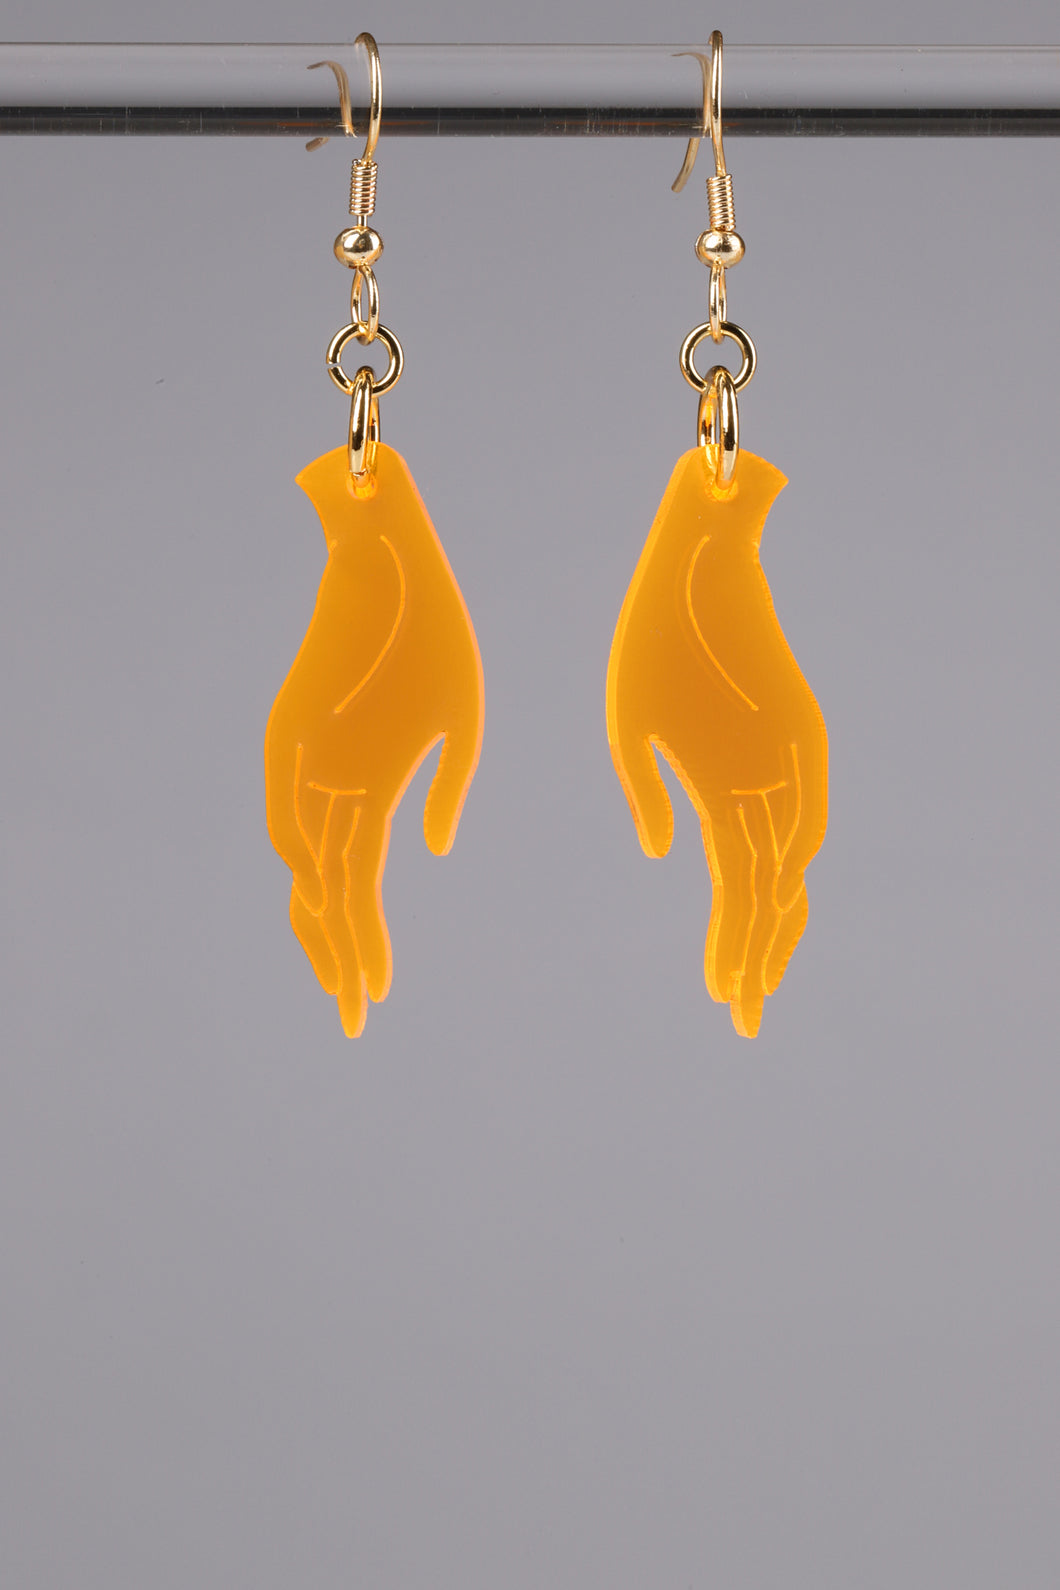 Small Hand Earrings - Neon Orange